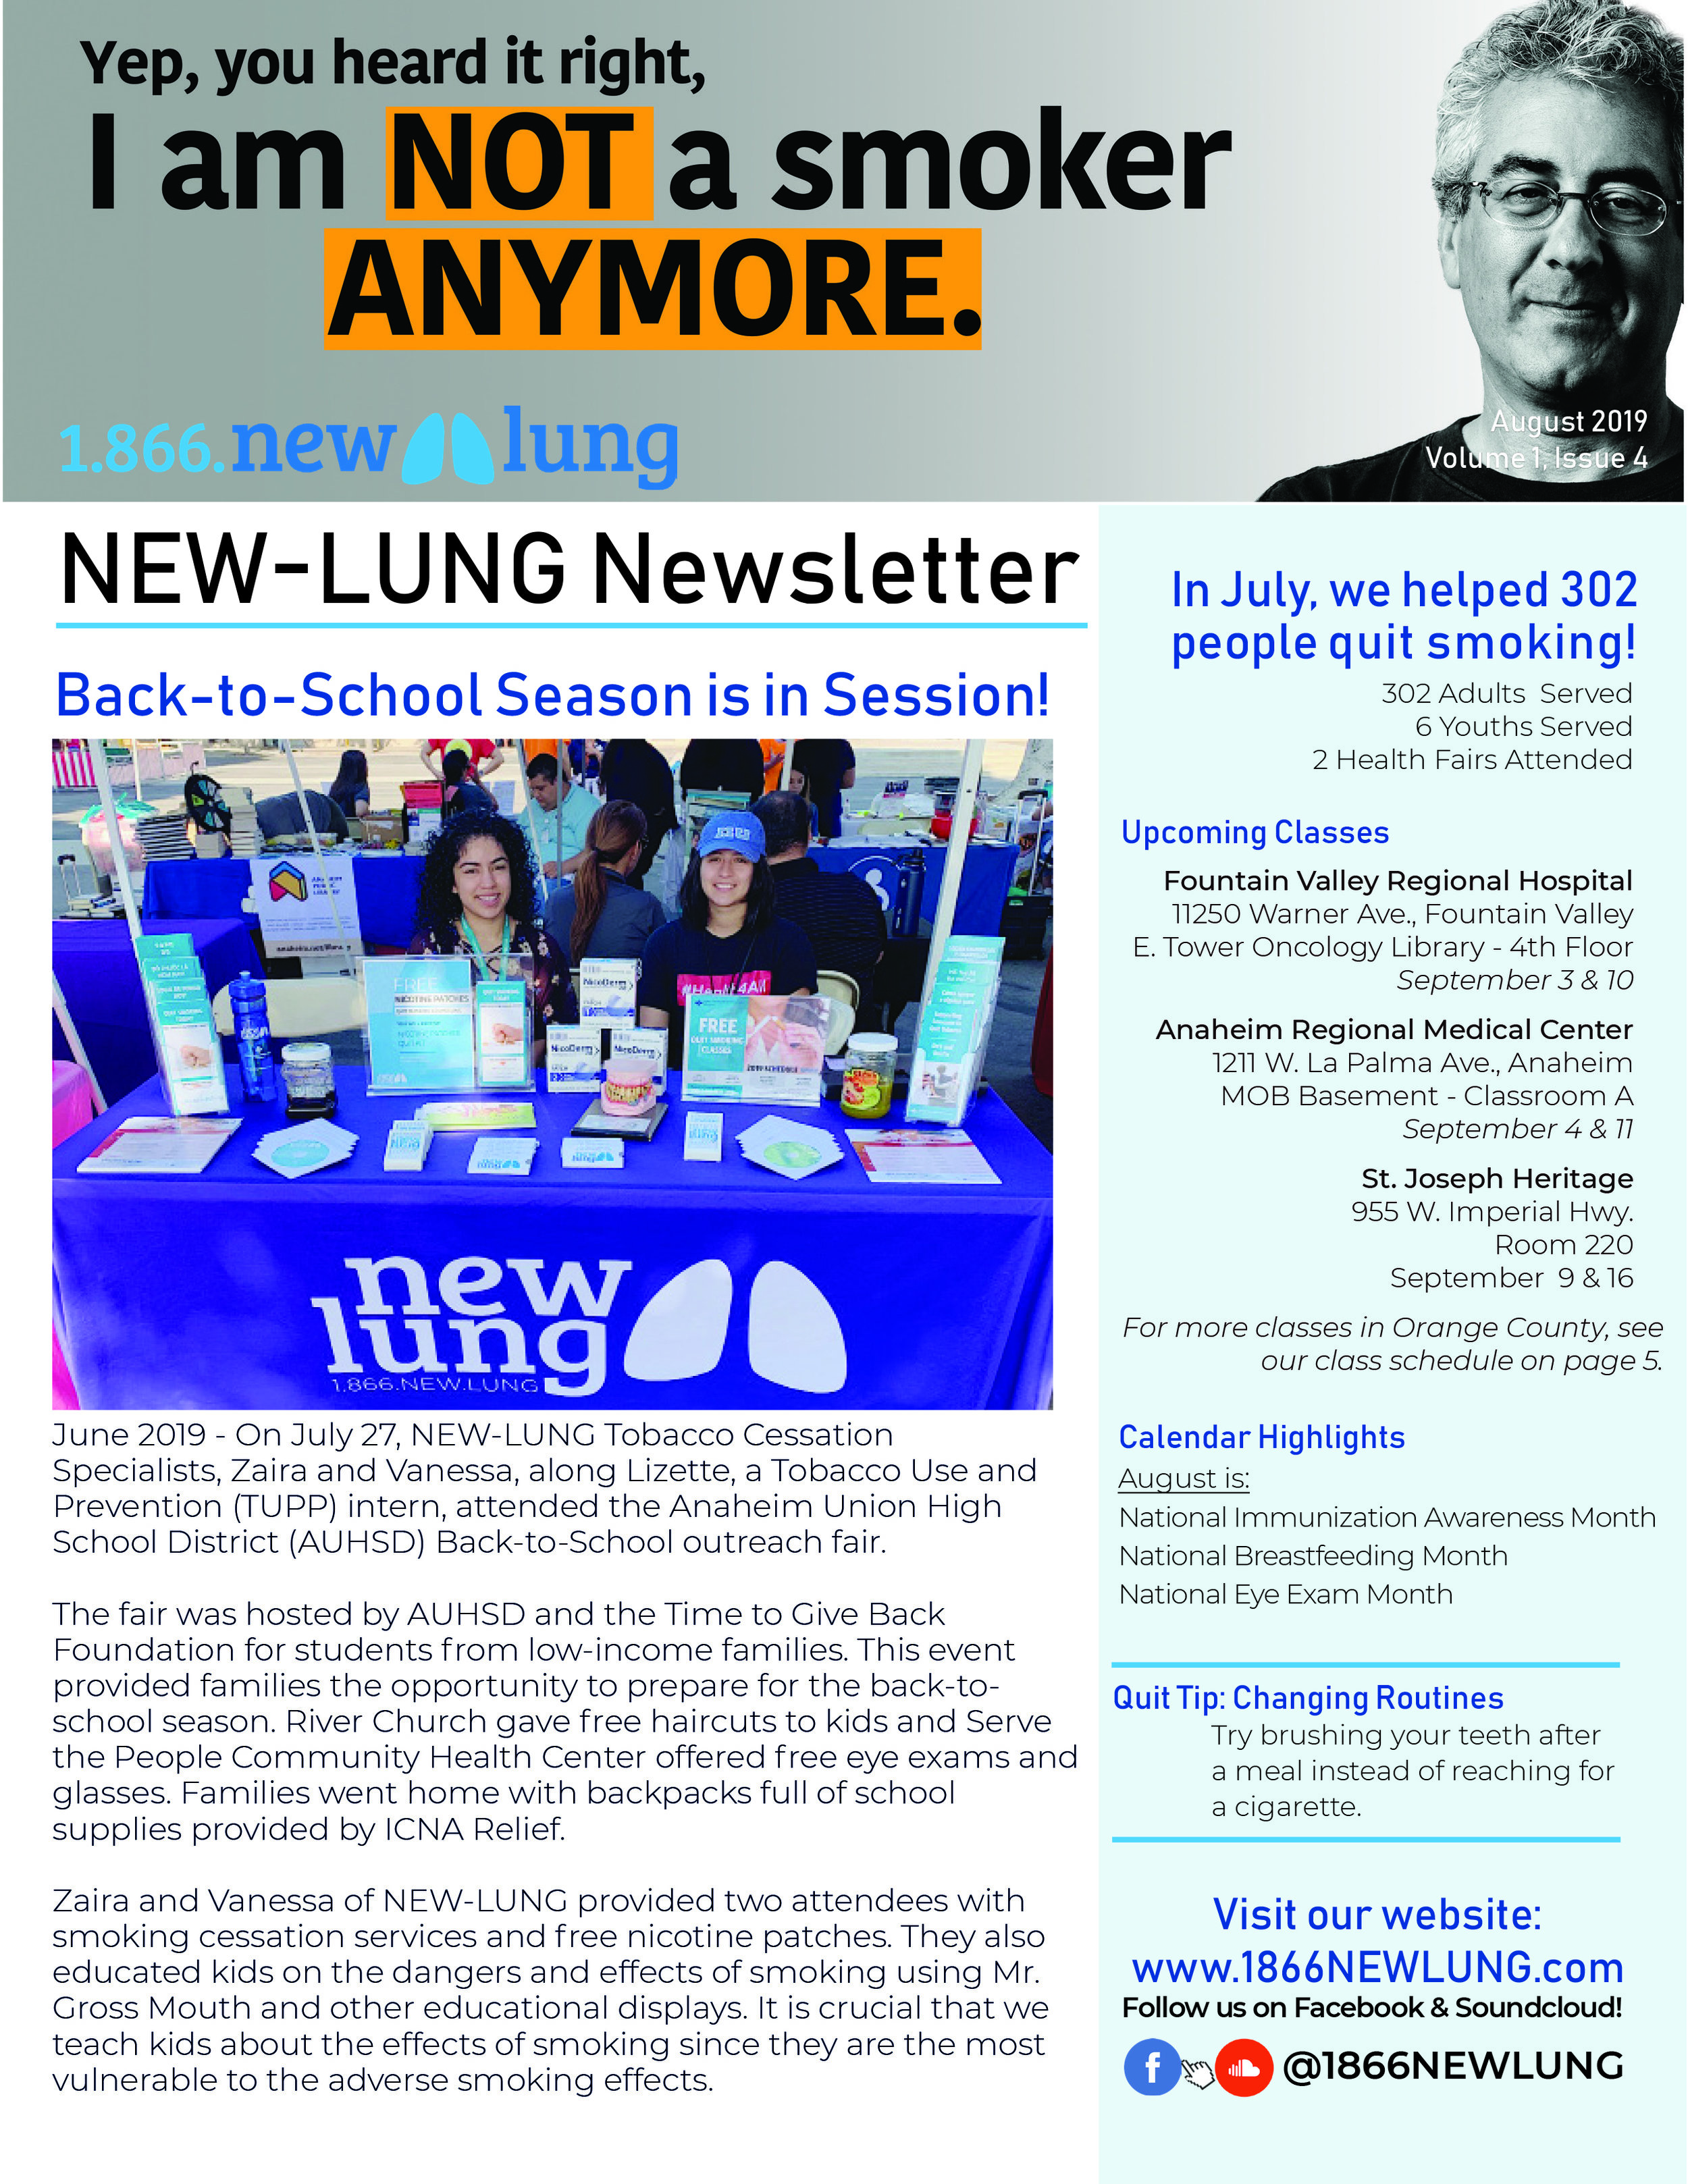 Read the August issue - Read about the affects of vaping and how it has hospitalized a Connecticut teen.Get to know a bit about the NEW-LUNG staff.